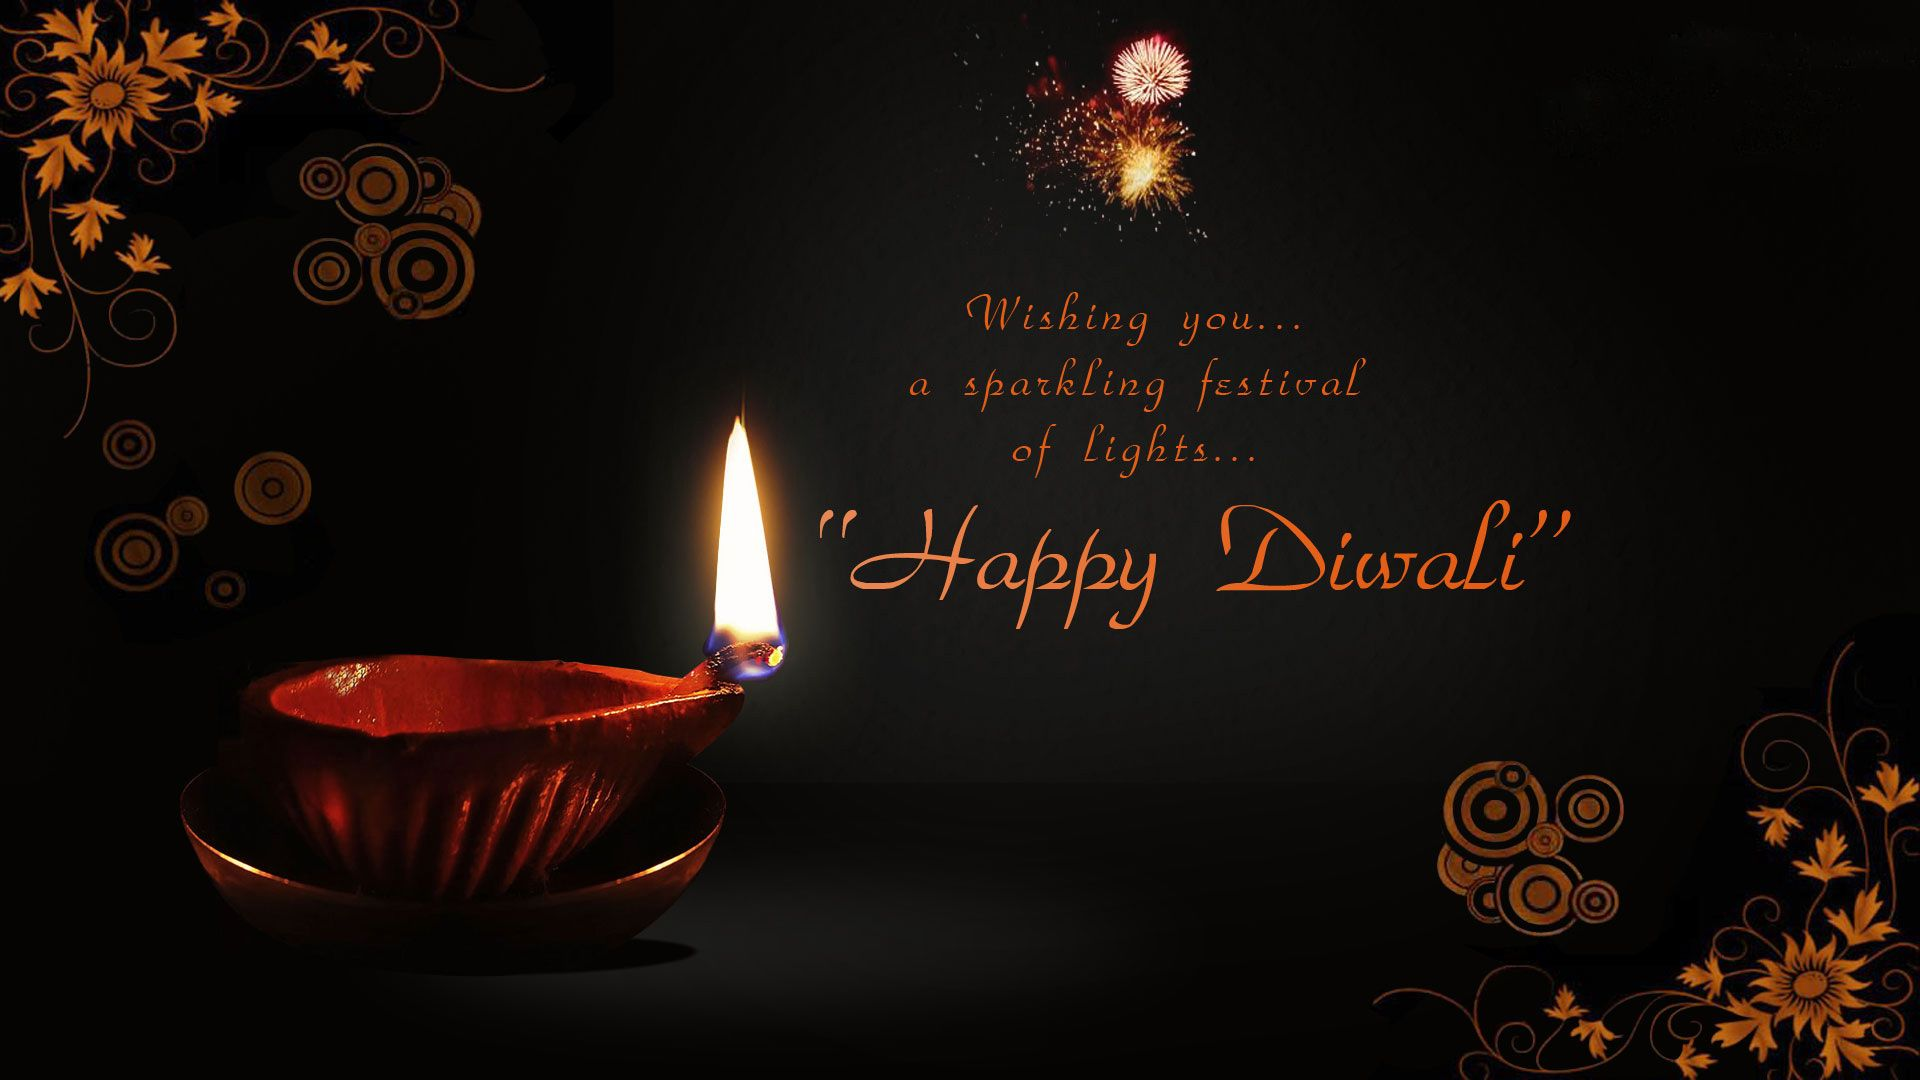 Happy diwali wishes wallpaper and sms pictures special diwali diwali greetings m4hsunfo